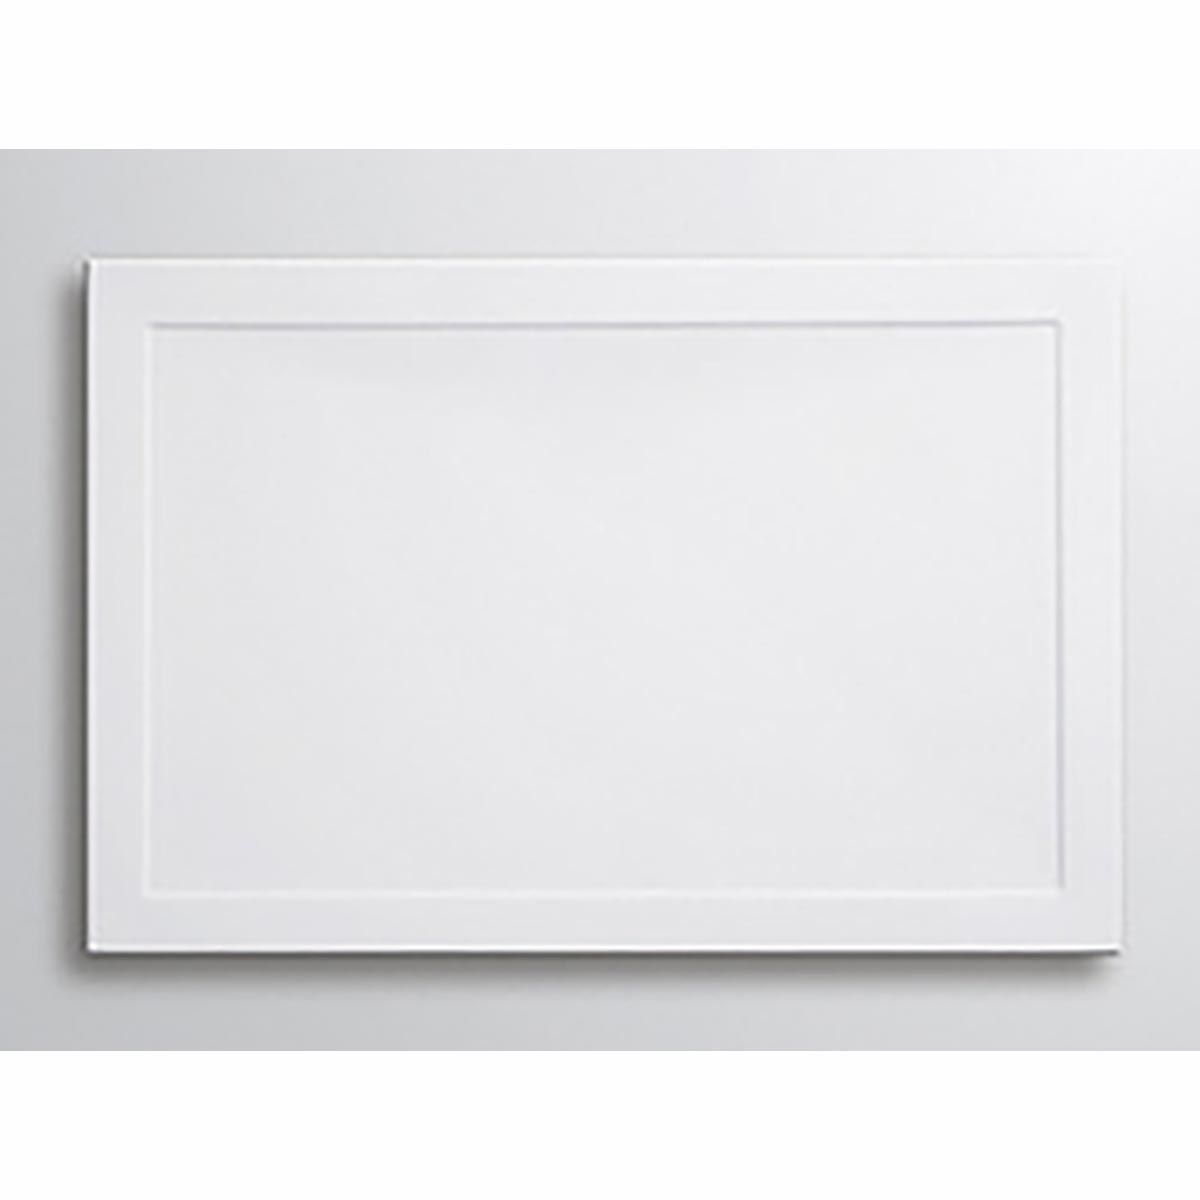 Lakes White Low Profile Rectangular ABS Tray 1800mm X 800mm